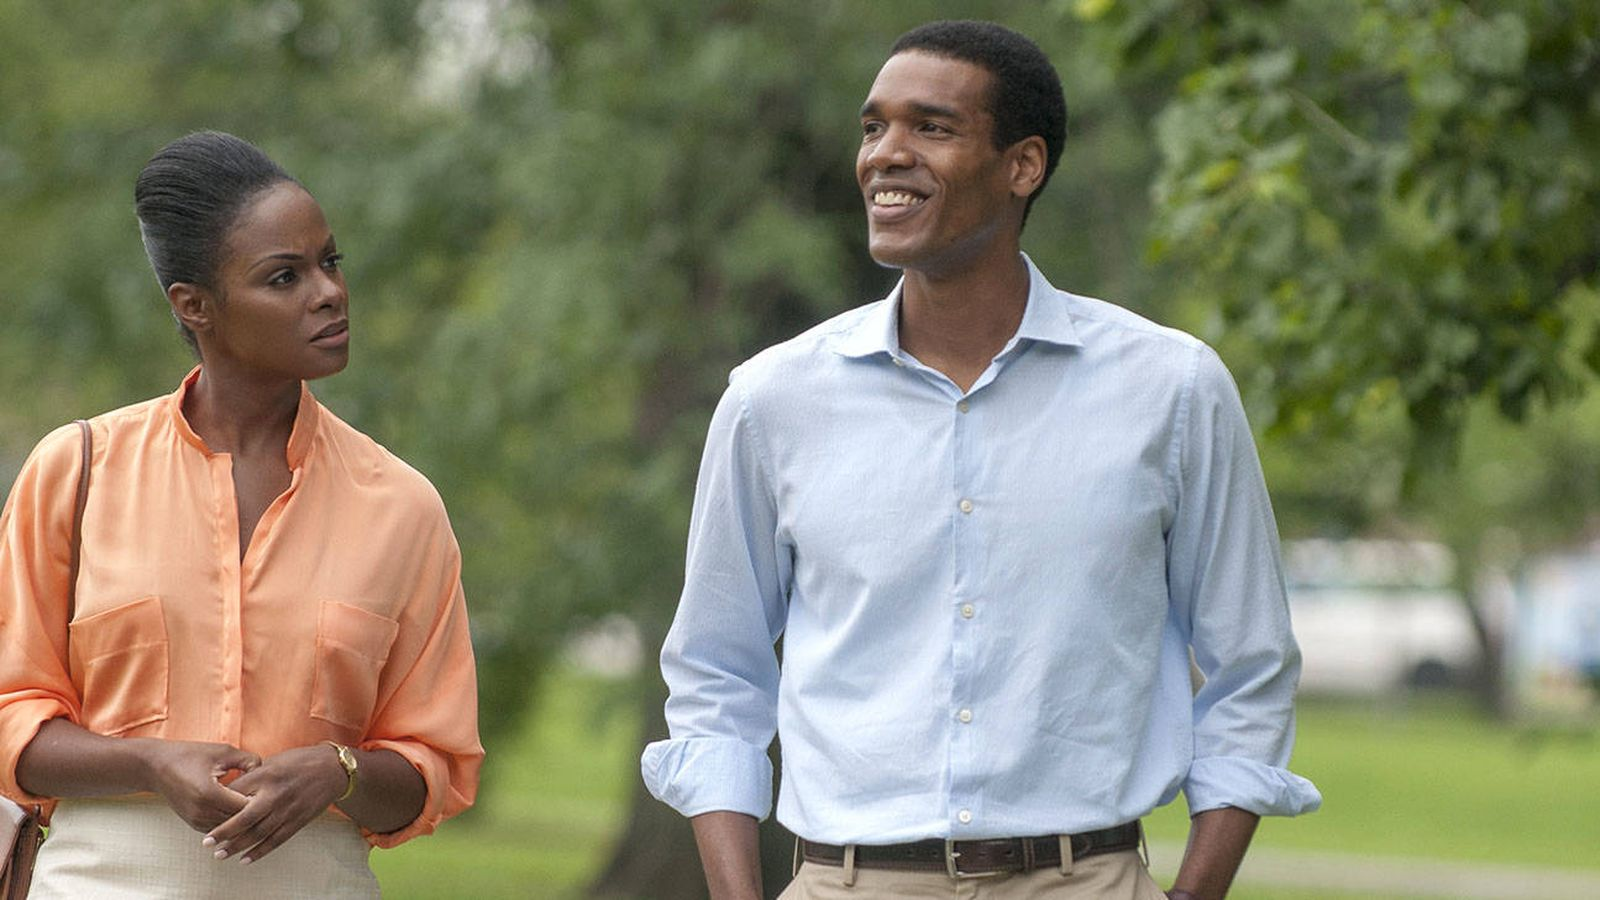 Foto: 'Southside with you'